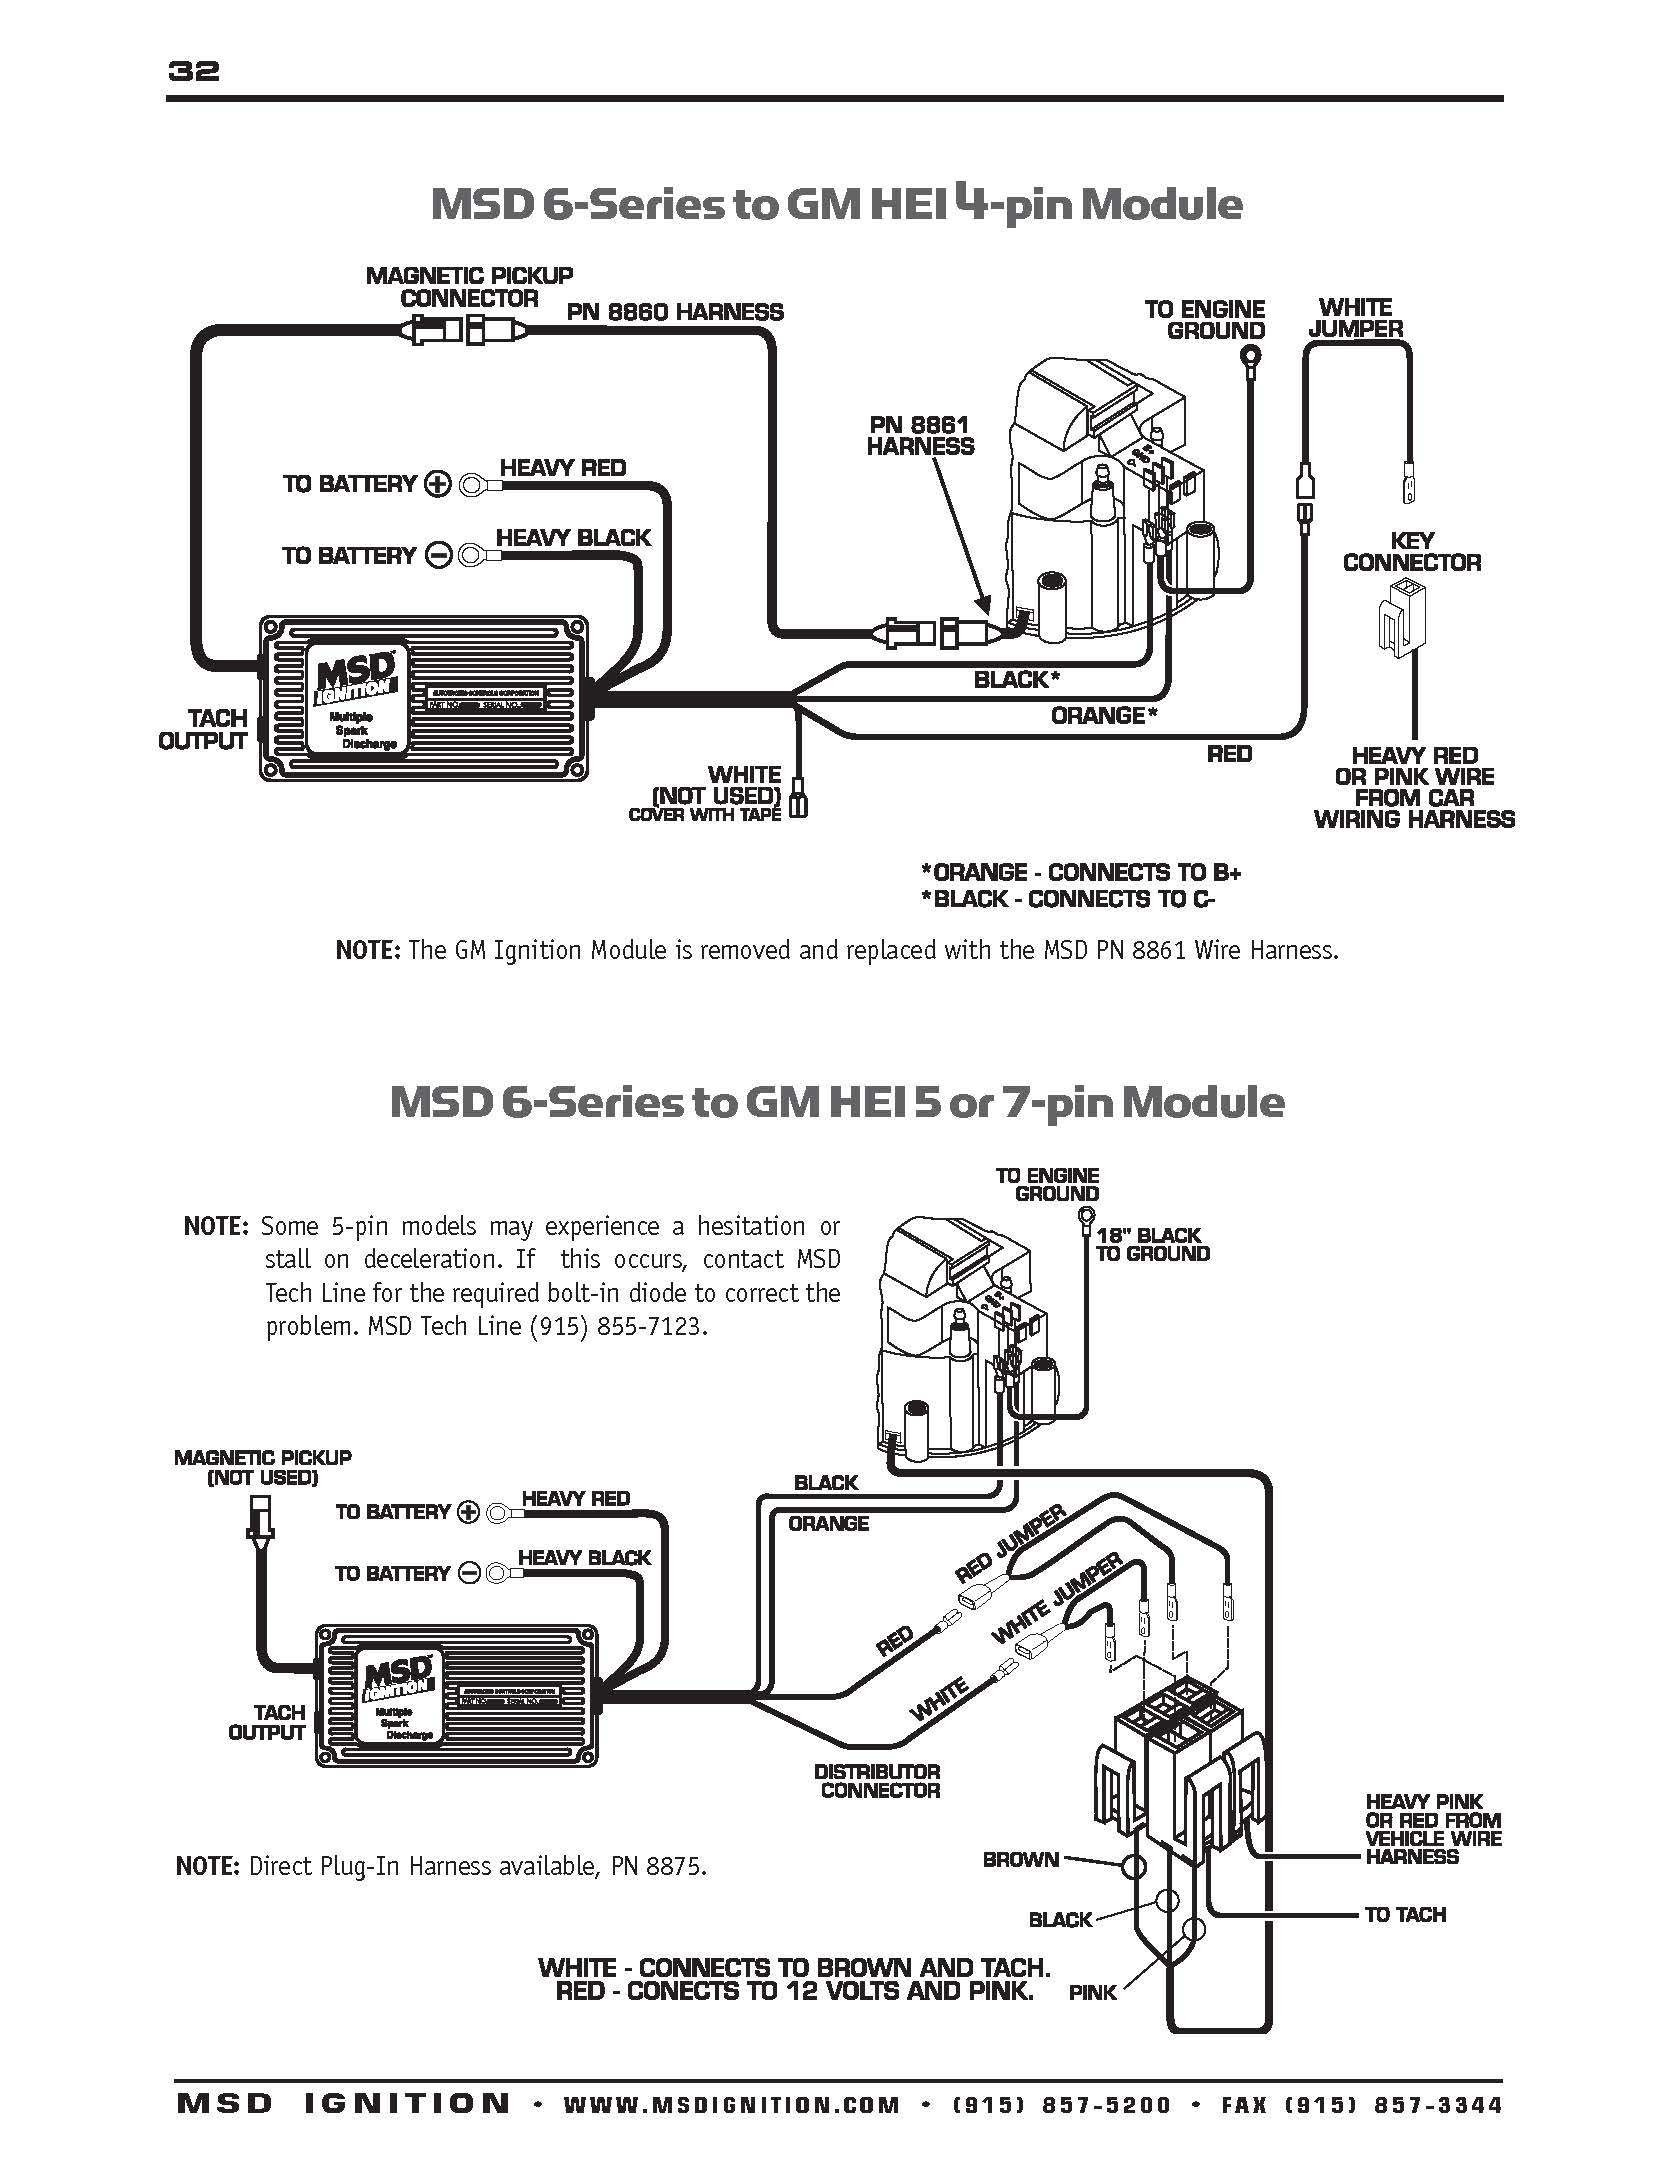 stereo wiring diagram for 1996 chevy 1500 chevy hei distributor wiring diagram | free wiring diagram msd 6al wire diagram for 1996 chevy impalla #9